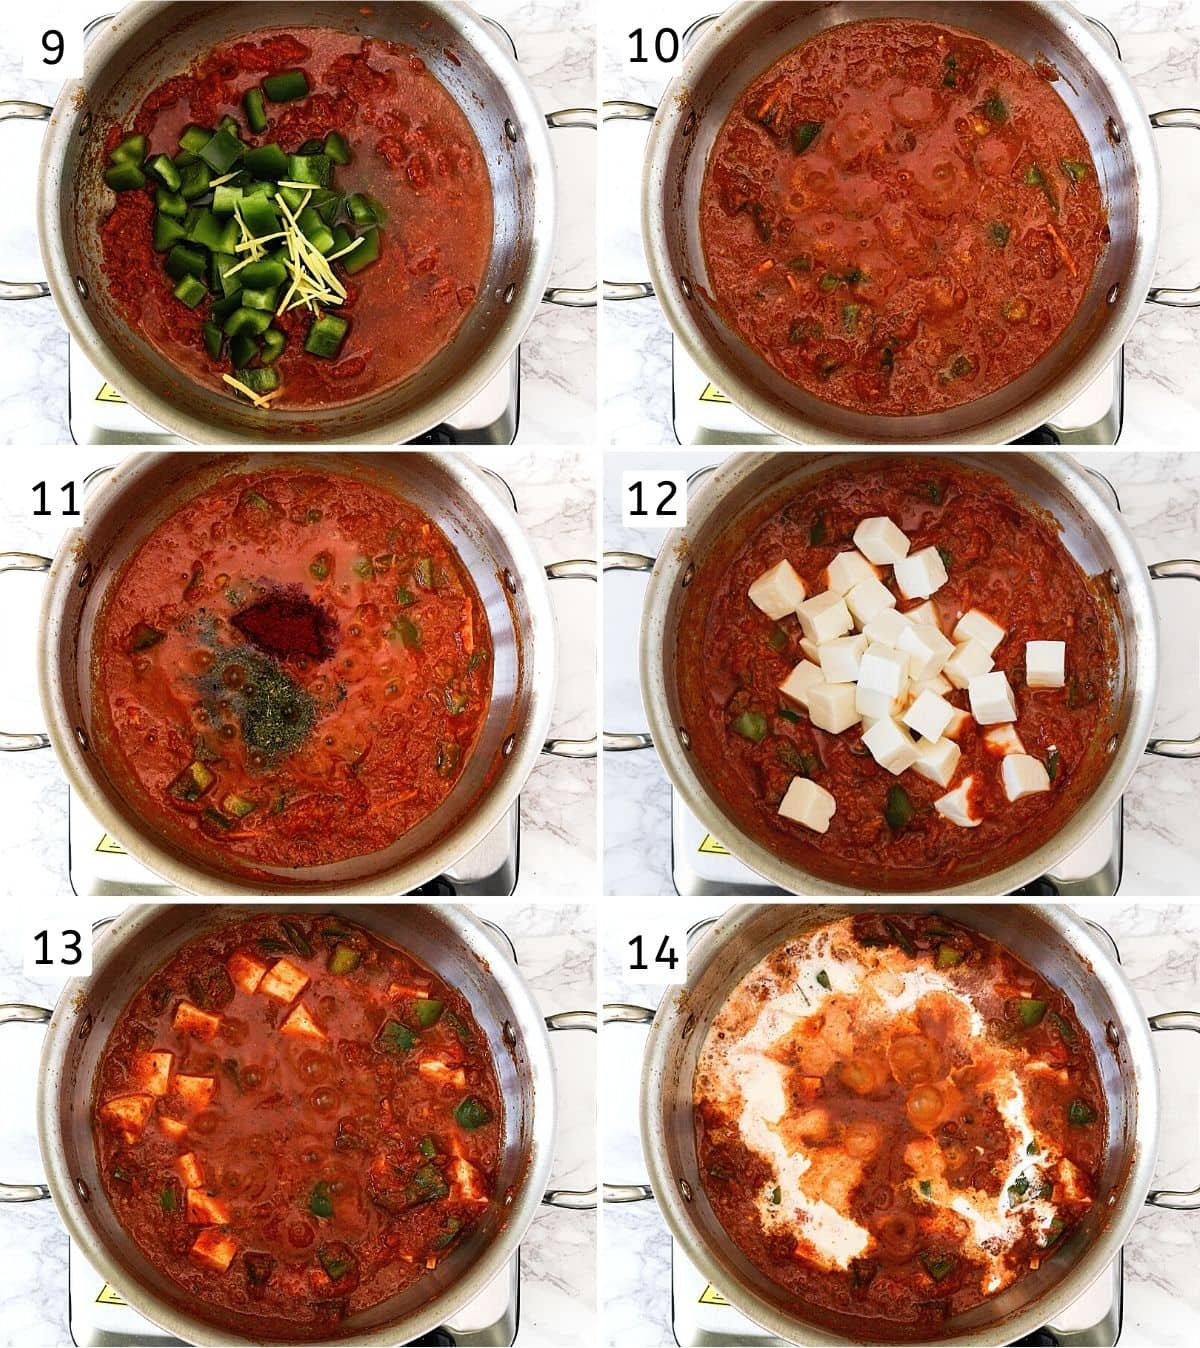 Collage of 6 steps showing adding peppers, ginger, simmering, adding spices, adding paneer, mixed, adding cream.